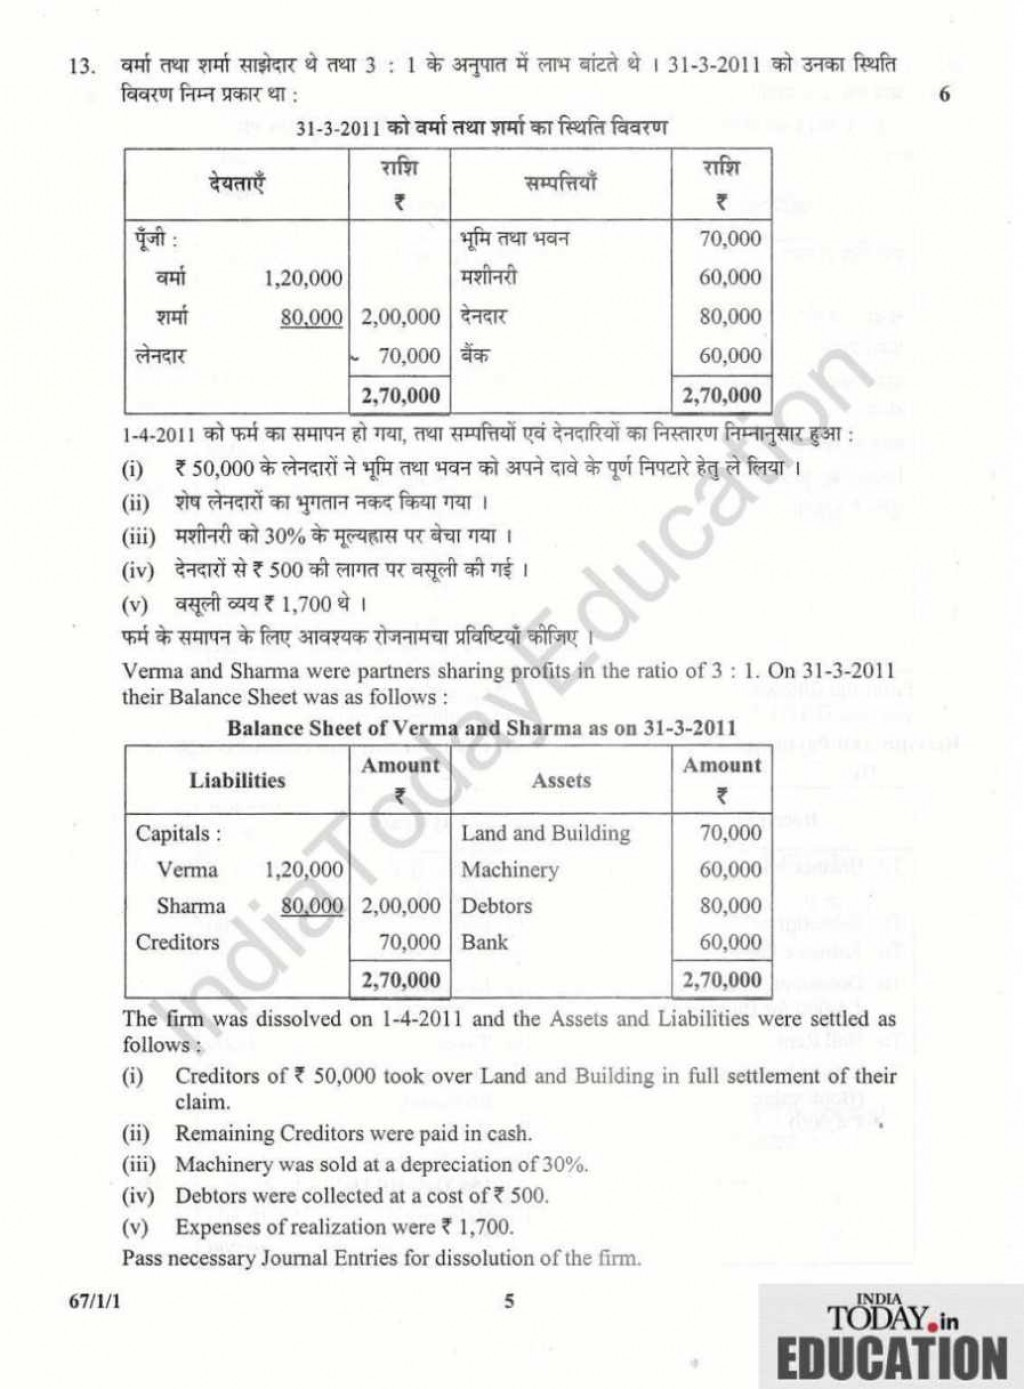 027 Uw Application Essay Cbse Board Xii Commerce Previous Year Question Papers Incredible Madison Examples Transfer Large